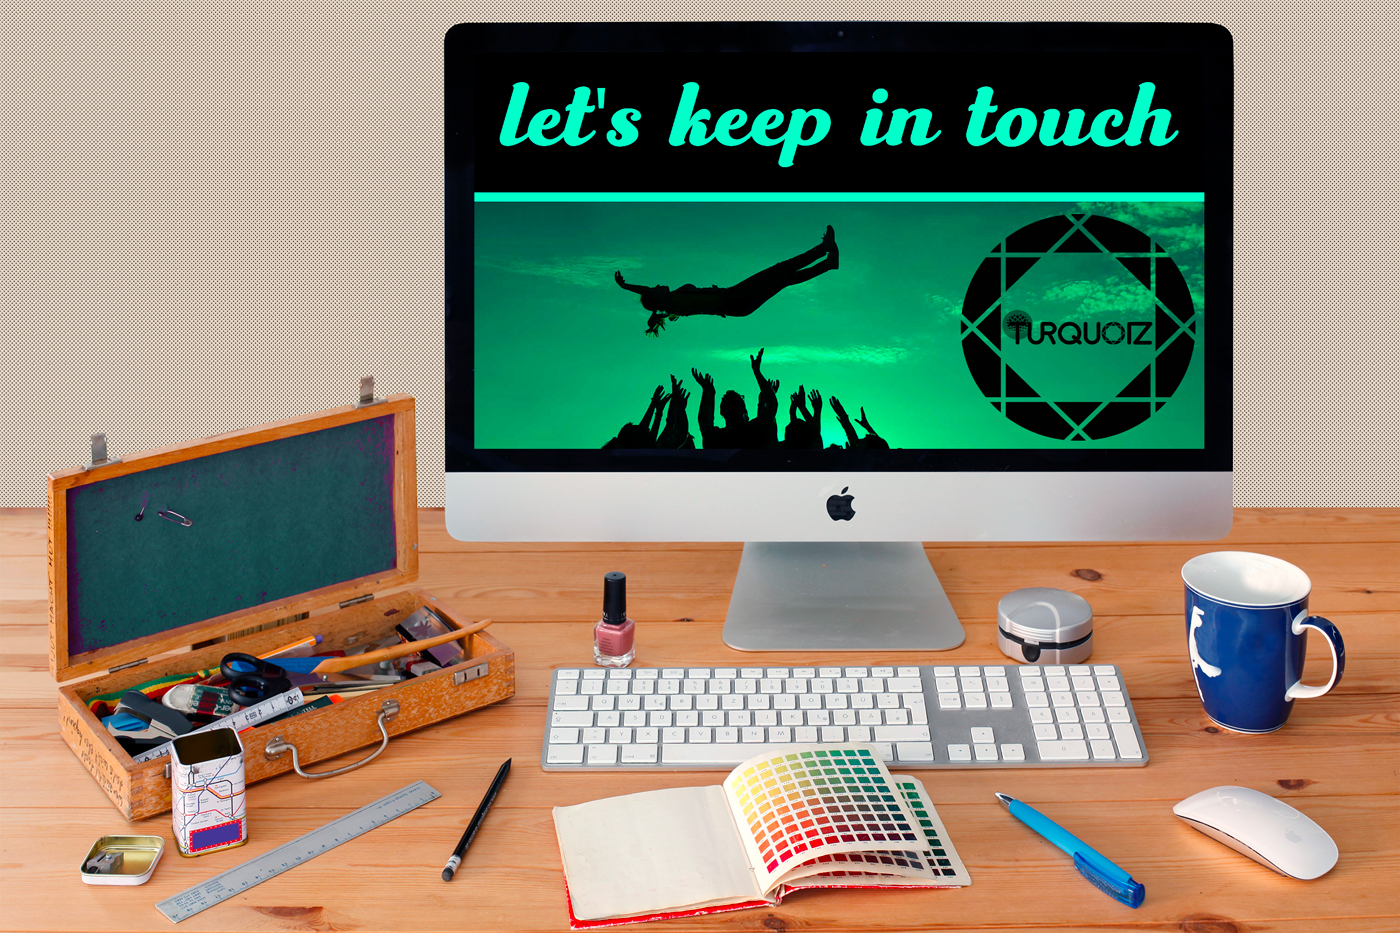 keepintouch